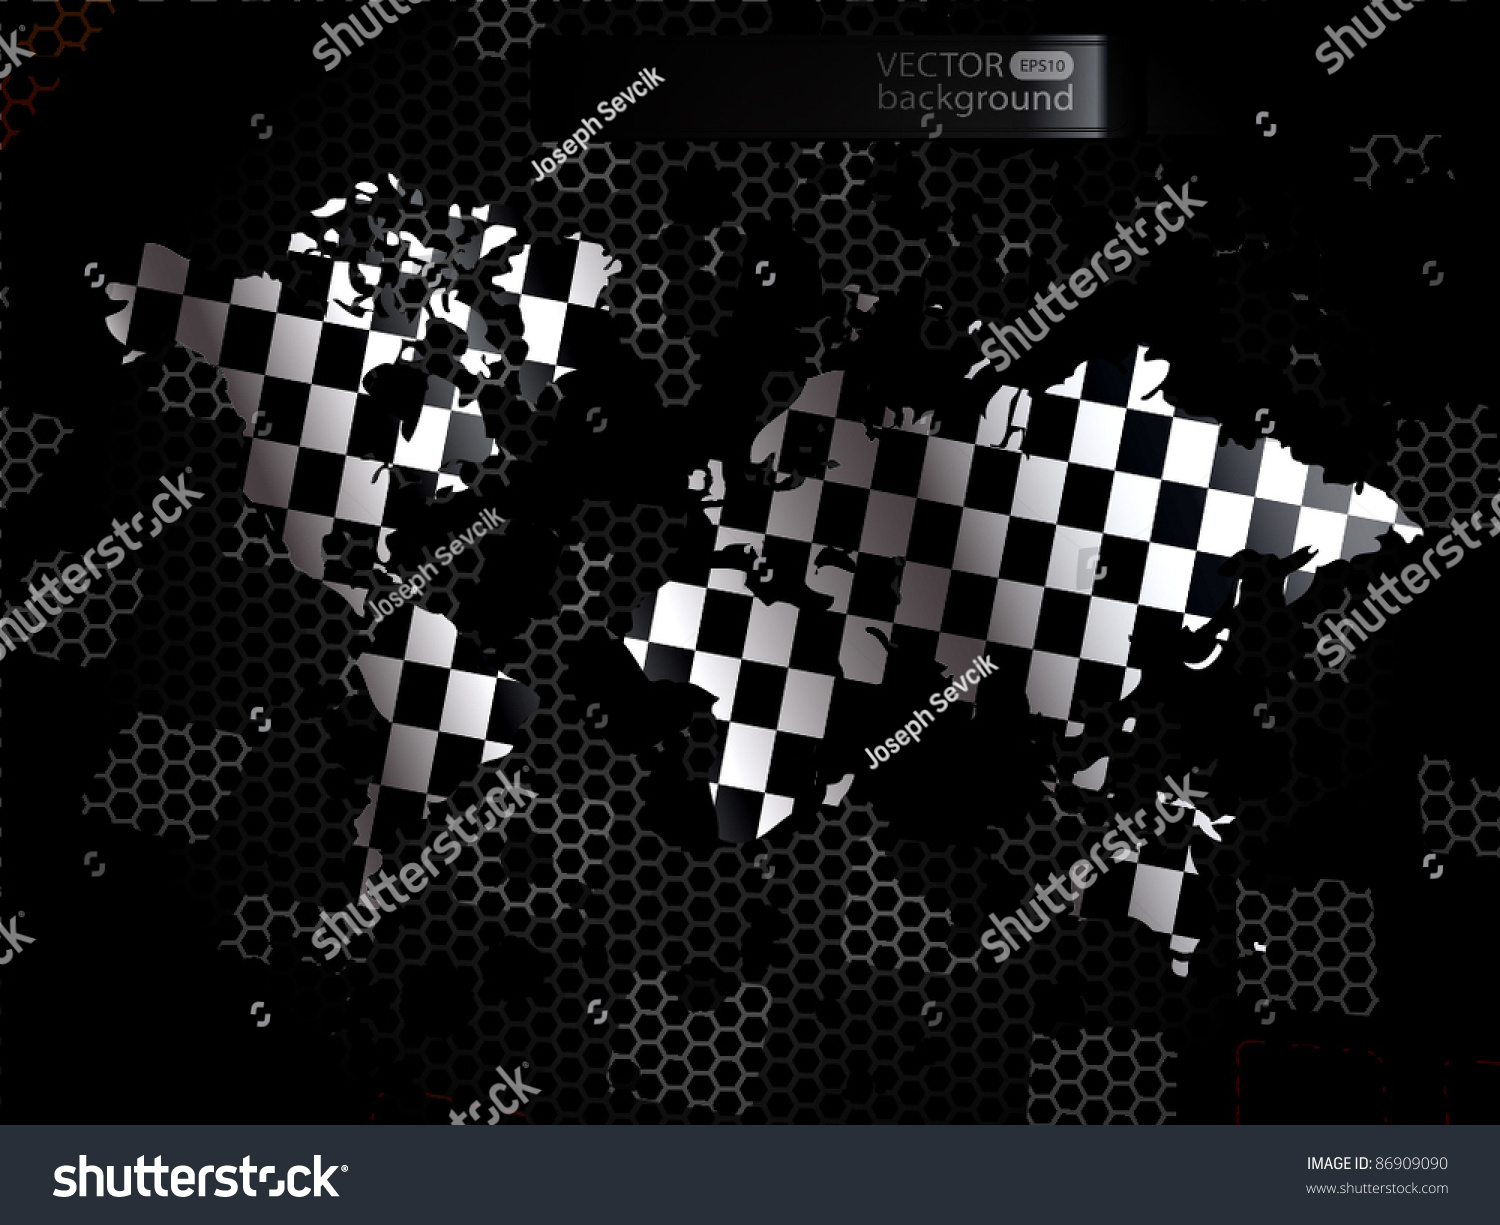 World map background racing theme vectores en stock 86909090 world map background racing theme gumiabroncs Images